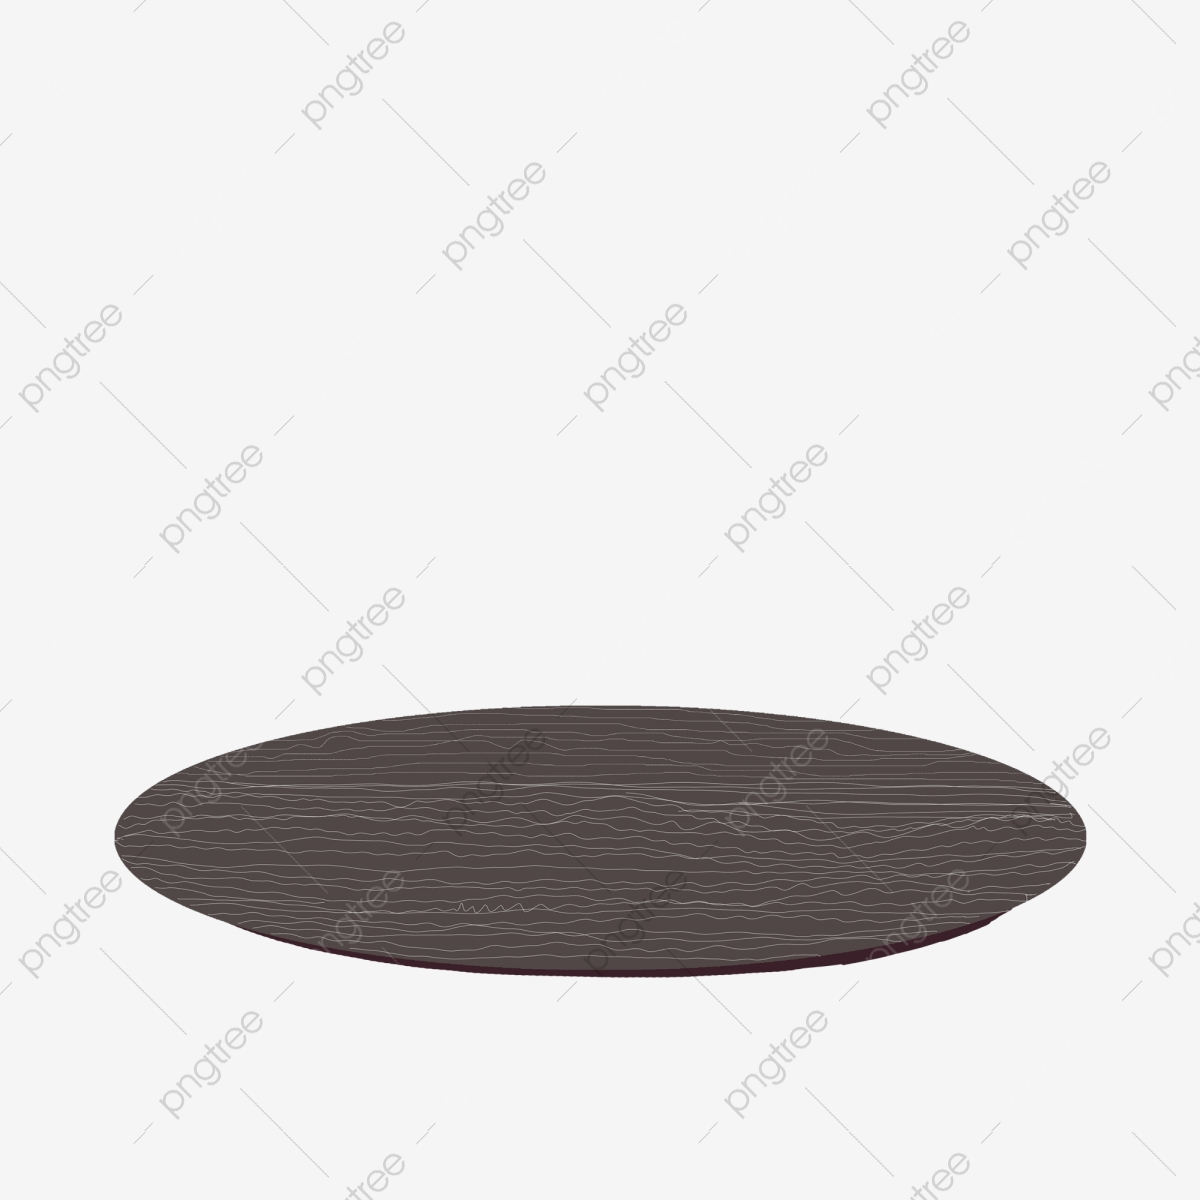 Carpet Round Blanket On The Ground Cartoon Mat Brown Blanket Dark Floor Mat Png Transparent Clipart Image And Psd File For Free Download